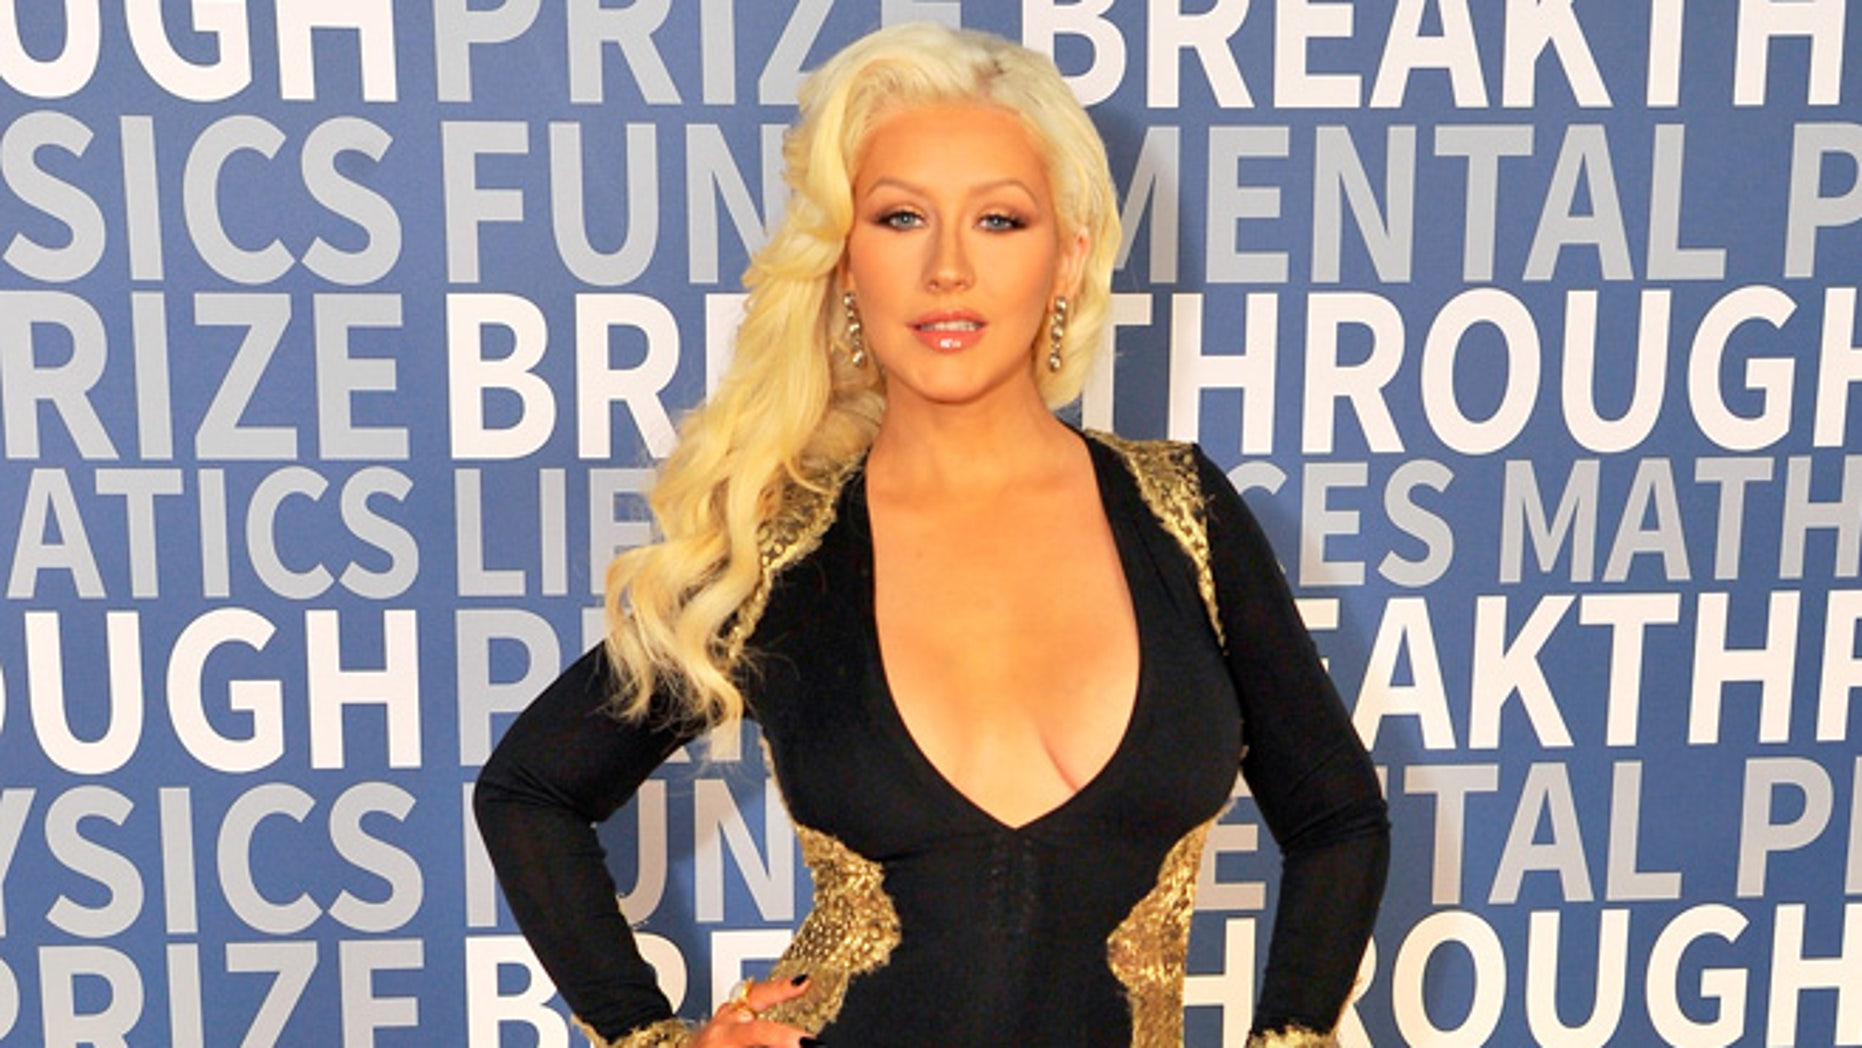 MOUNTAIN VIEW, CA - NOVEMBER 08:  Singer/songwriter Christina Aguilera attends the 2016 Breakthrough Prize Ceremony on November 8, 2015 in Mountain View, California.  (Photo by Steve Jennings/Getty Images for Breakthrough Prize)